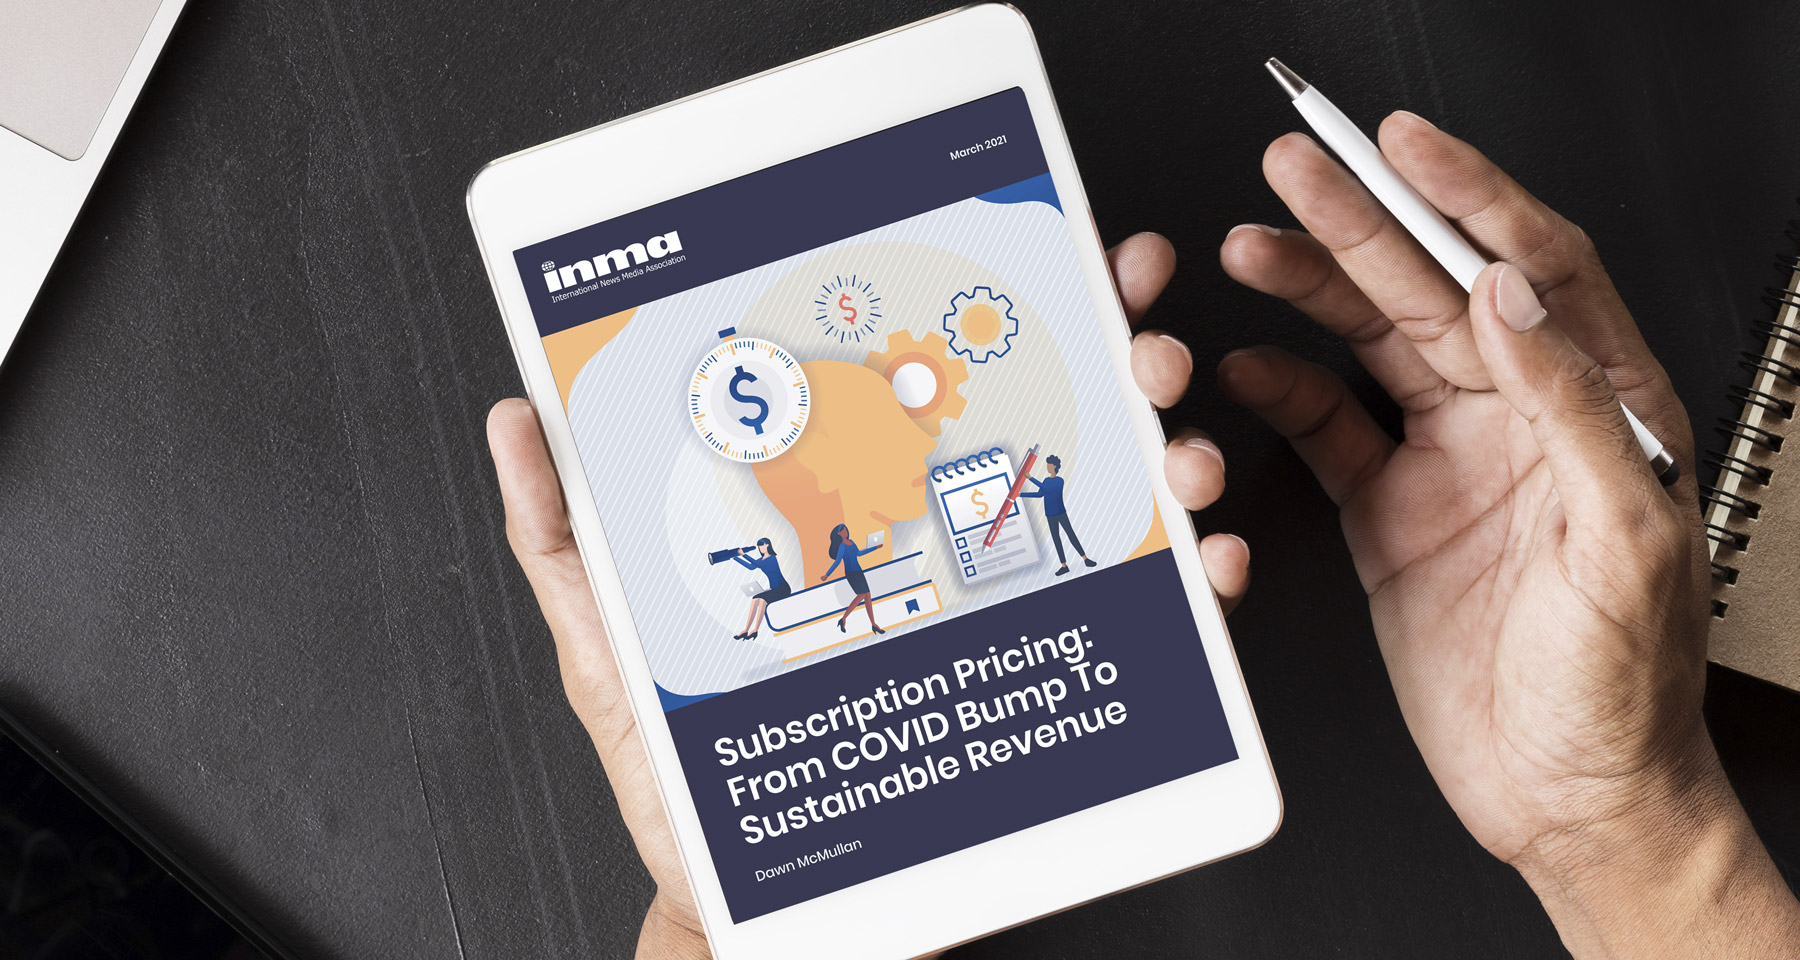 New INMA report explores smart pricing for news media companies post-COVID